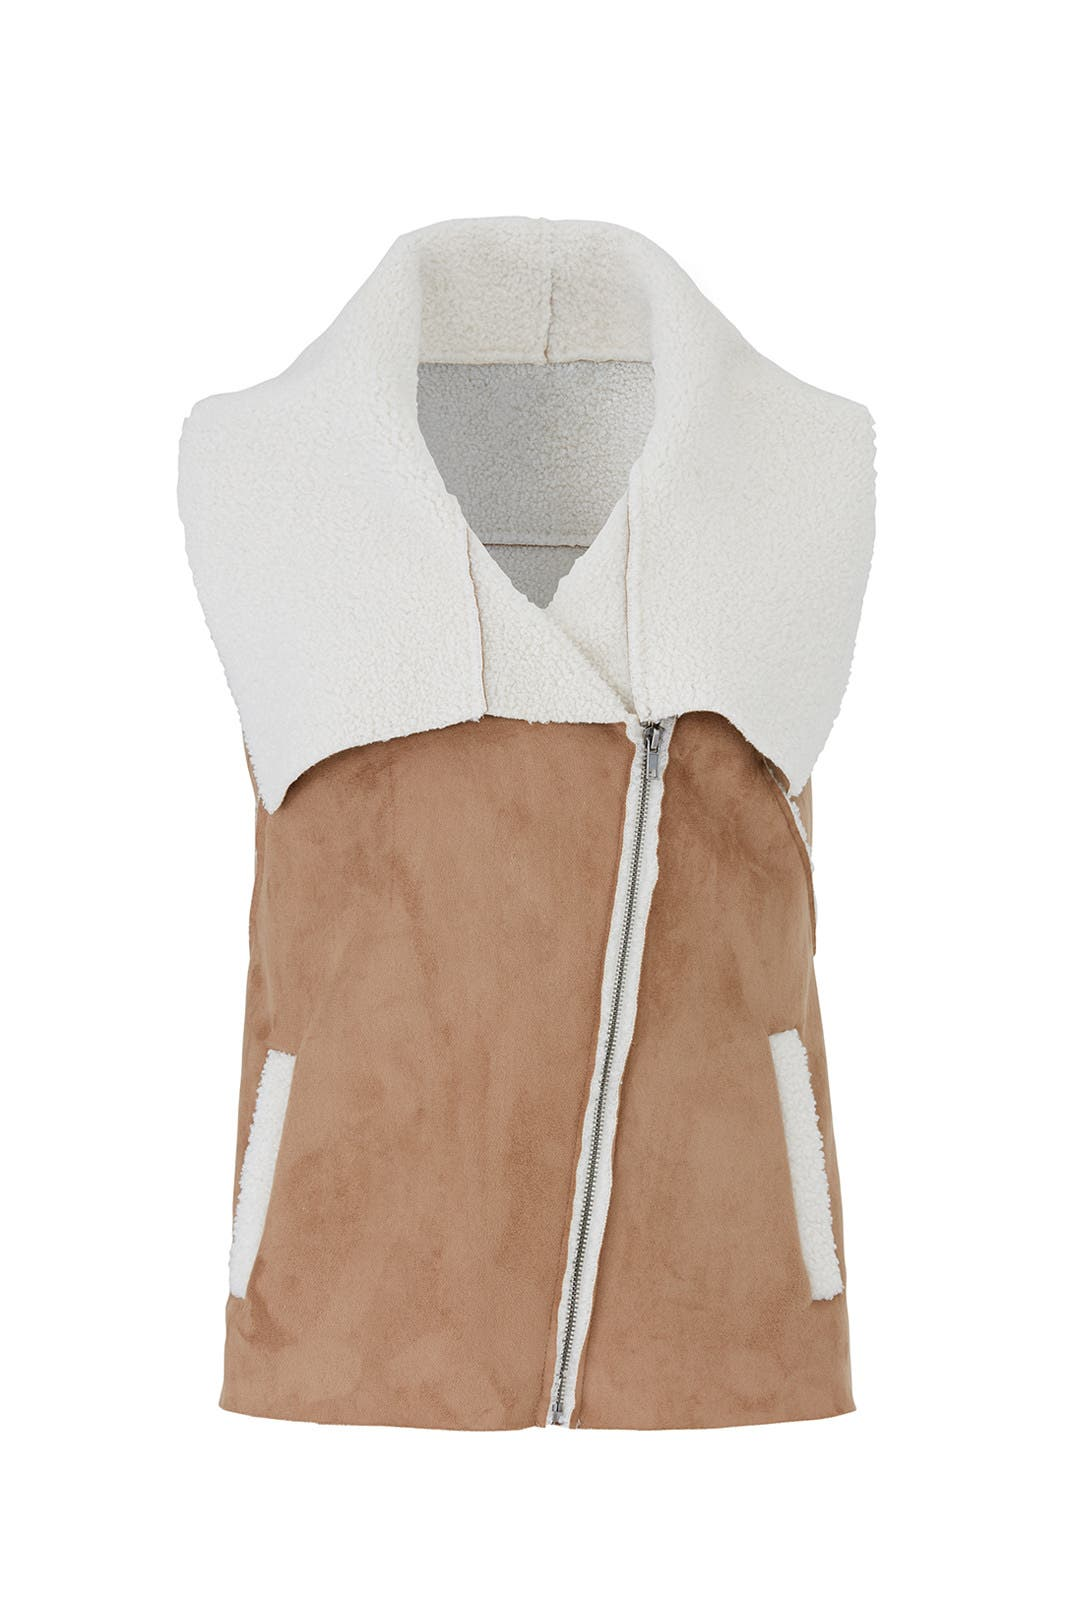 1a40929d8fcb Faux Shearling Fiona Vest by cupcakes and cashmere for  30